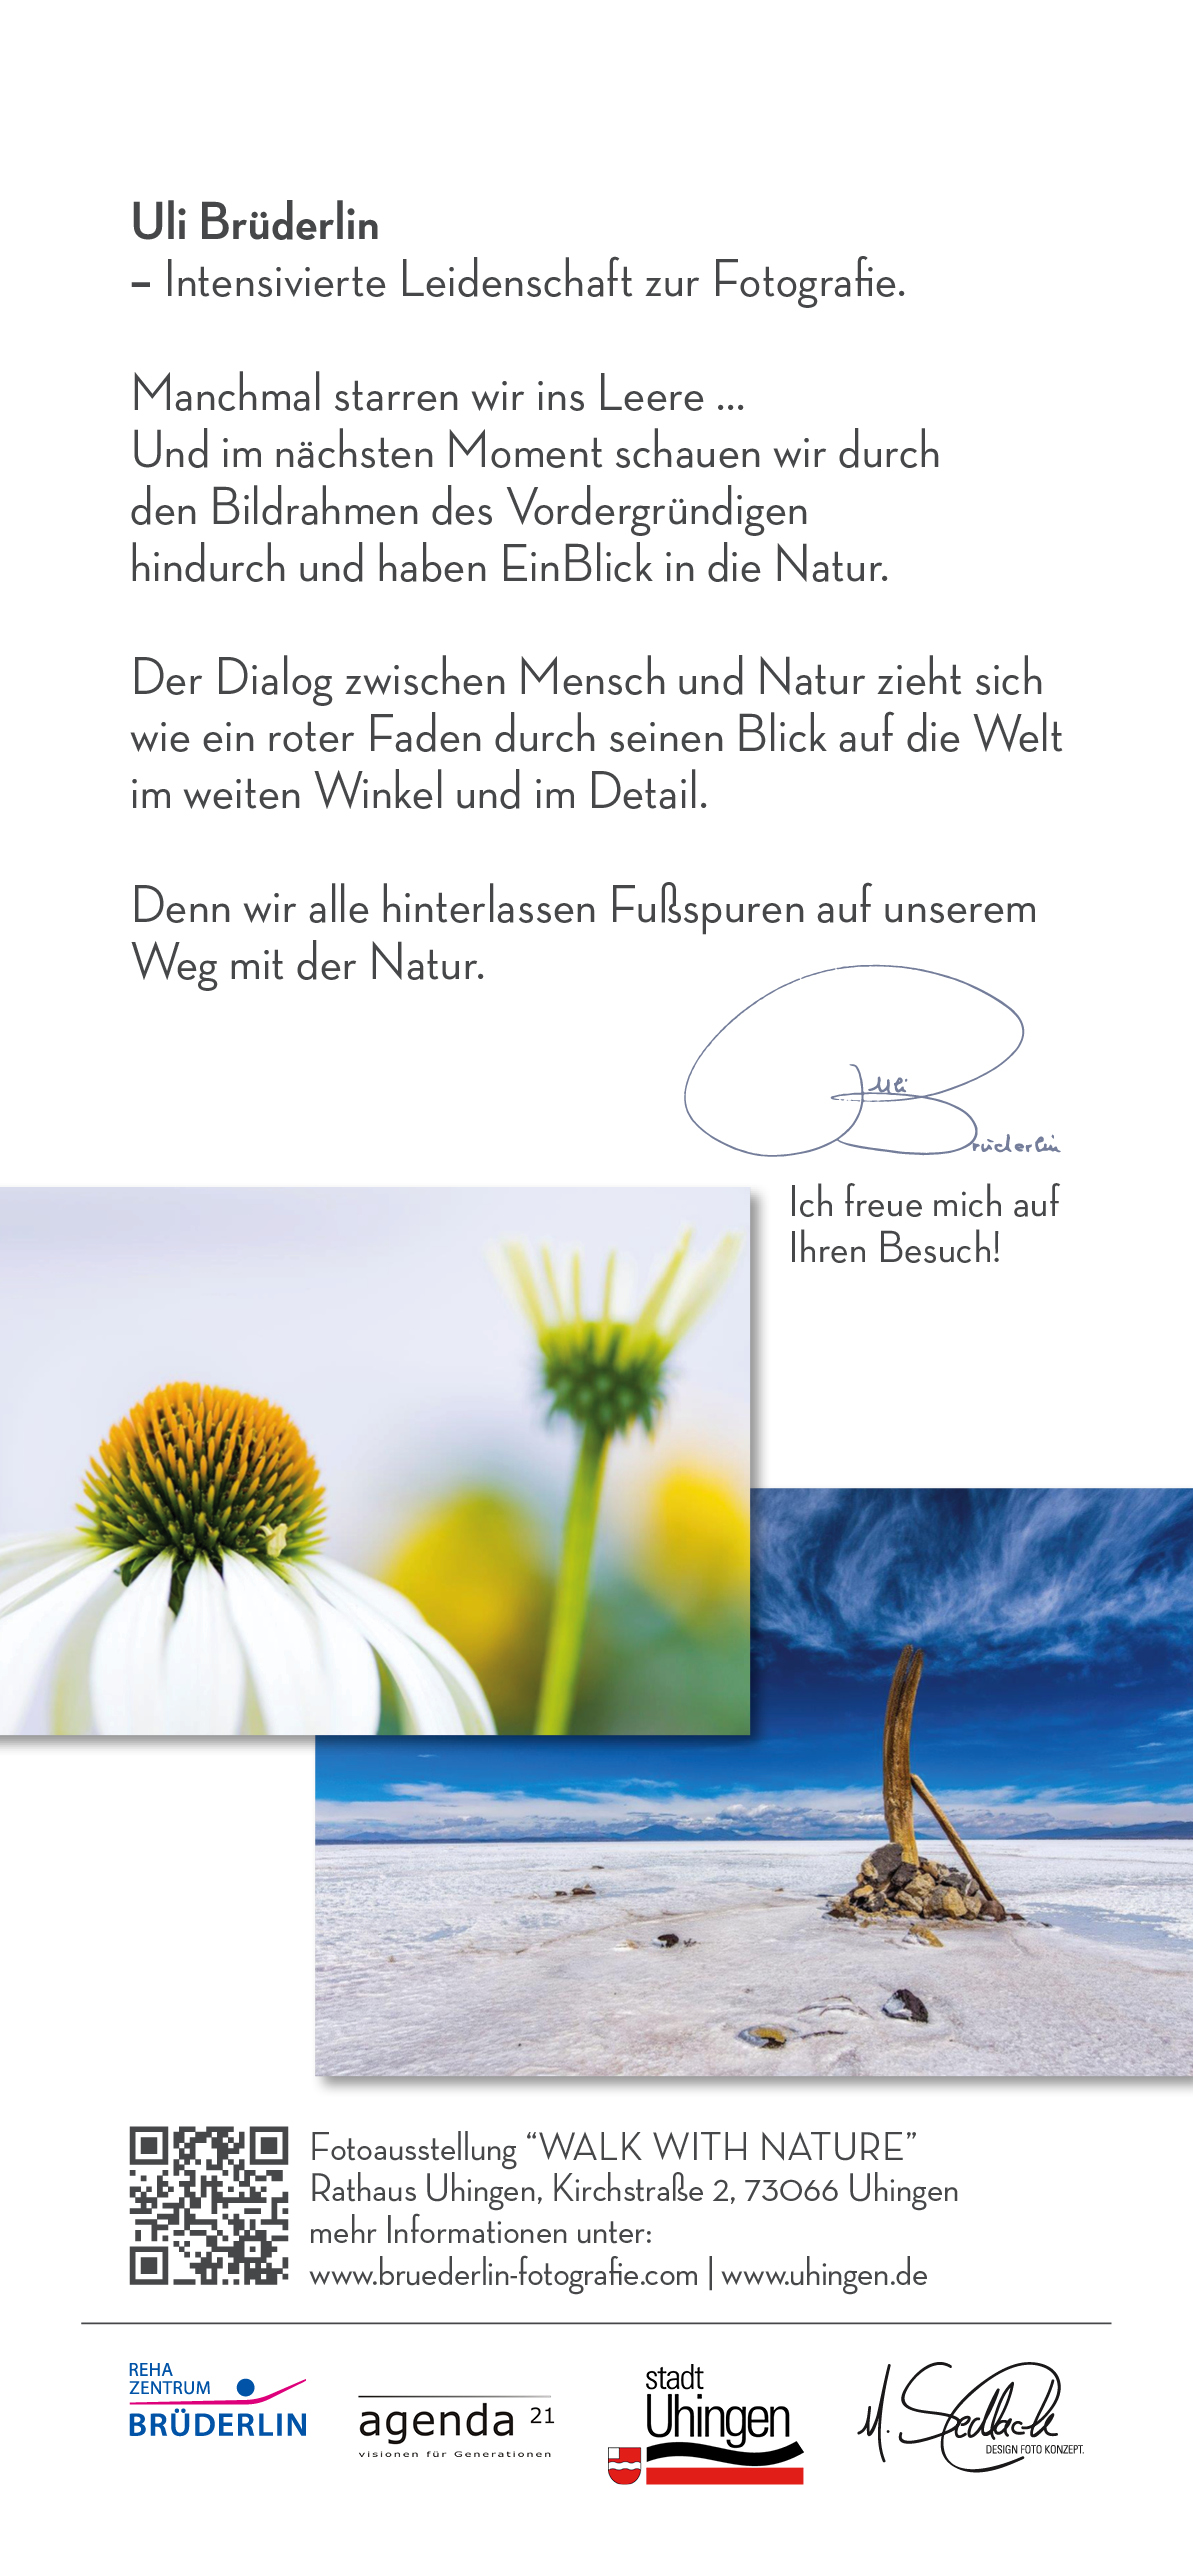 Uli+Flyer+6+walk+with+natur+RZ2-1.jpg